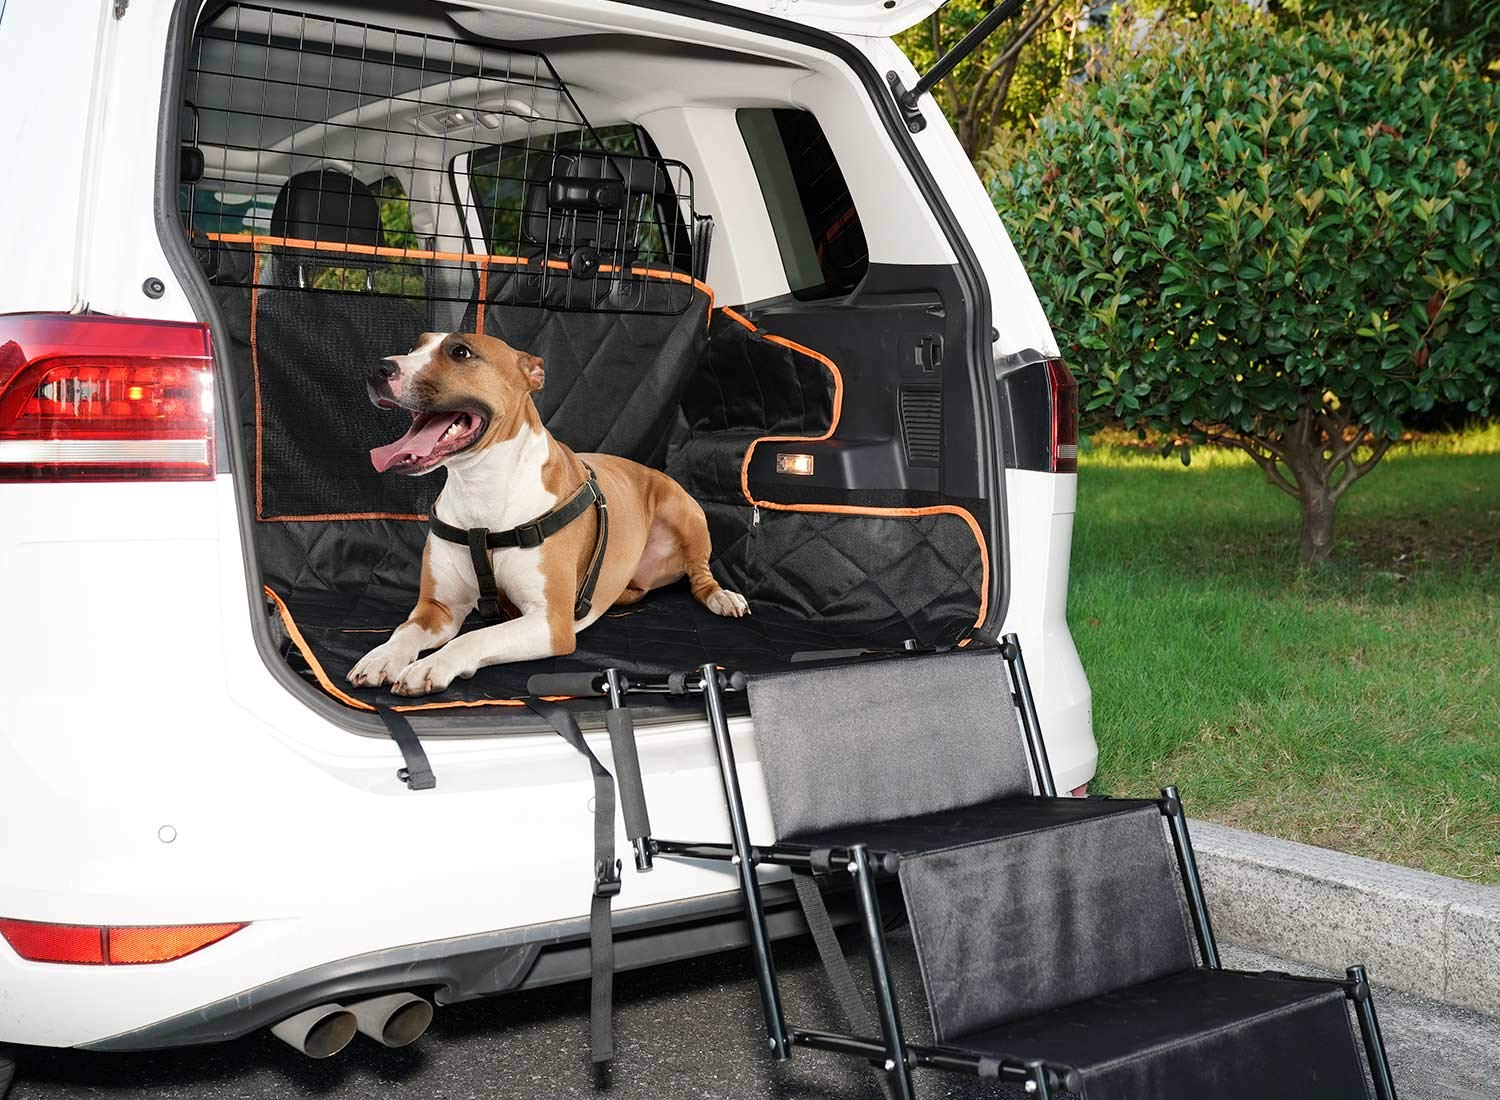 SUKI&SAMI Dog Car Barrier Adjustable Pet Barrier for SUVs,Cars and Vehicles,Heavy Duty Wire Adjustable,Smooth Design,Black by SUKI&SAMI (Image #8)